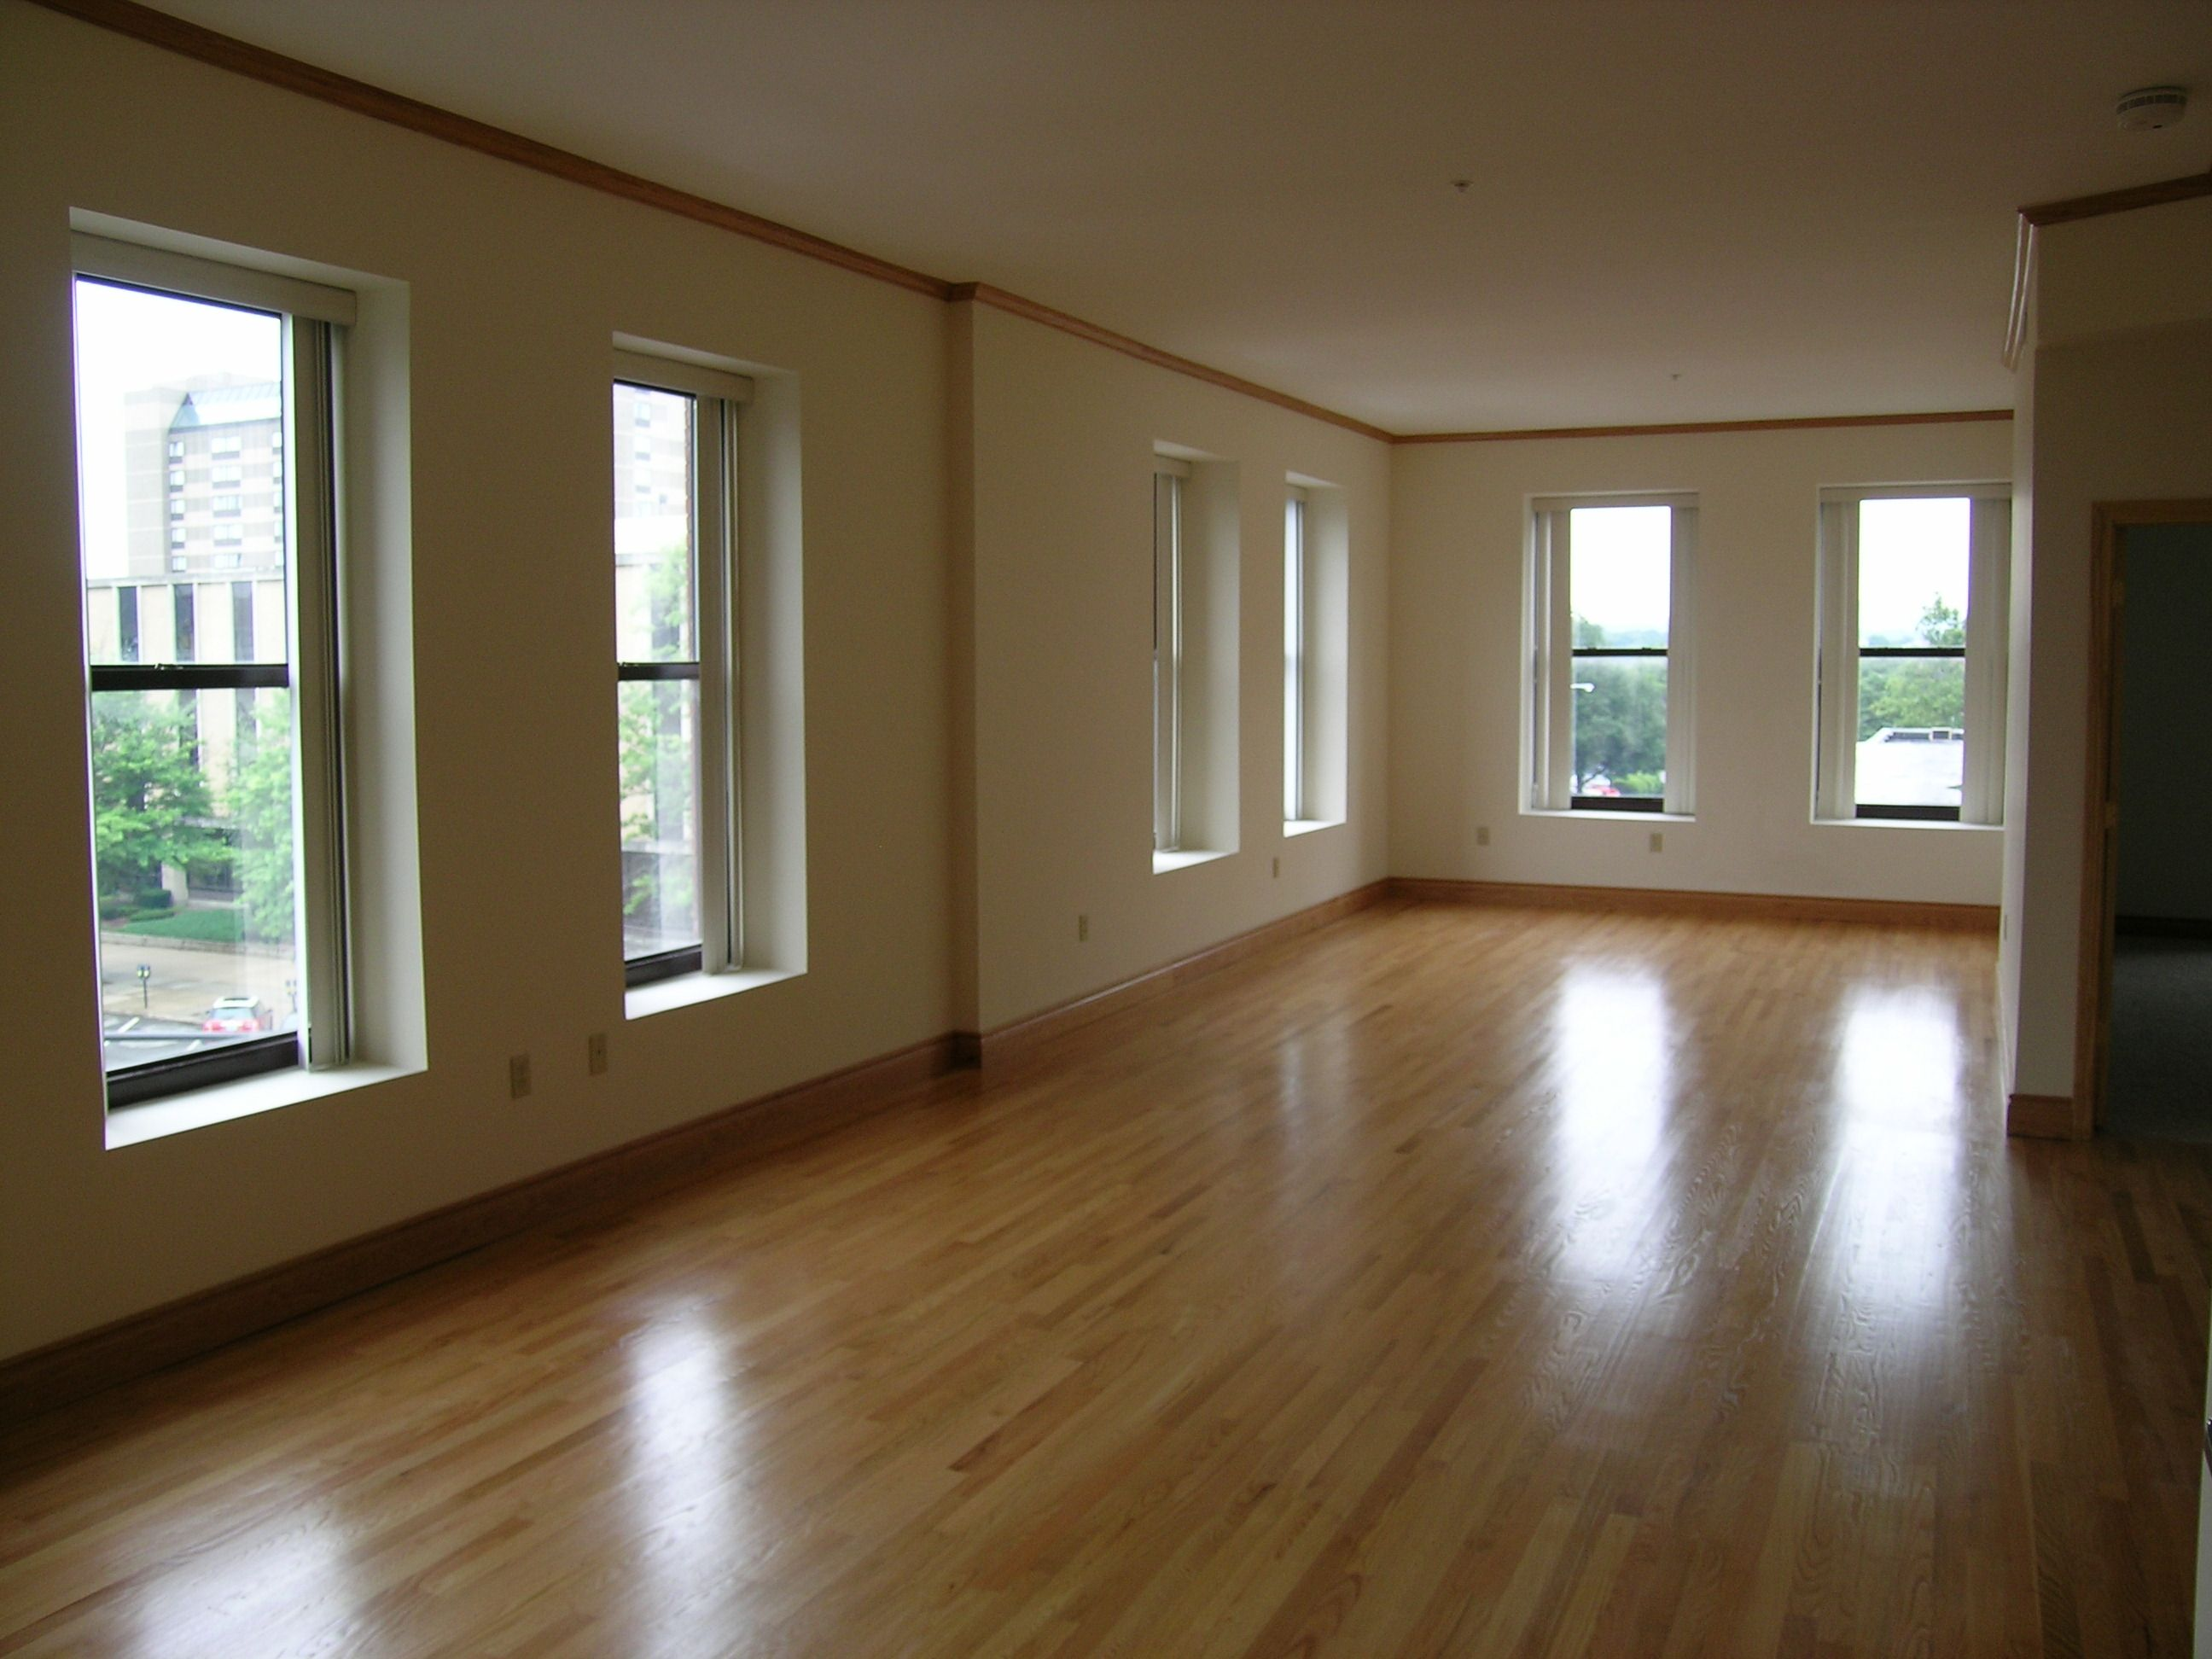 Pembroke Building Luxury Apartments Layout 2 Living Room With Oak Hardwood Floors